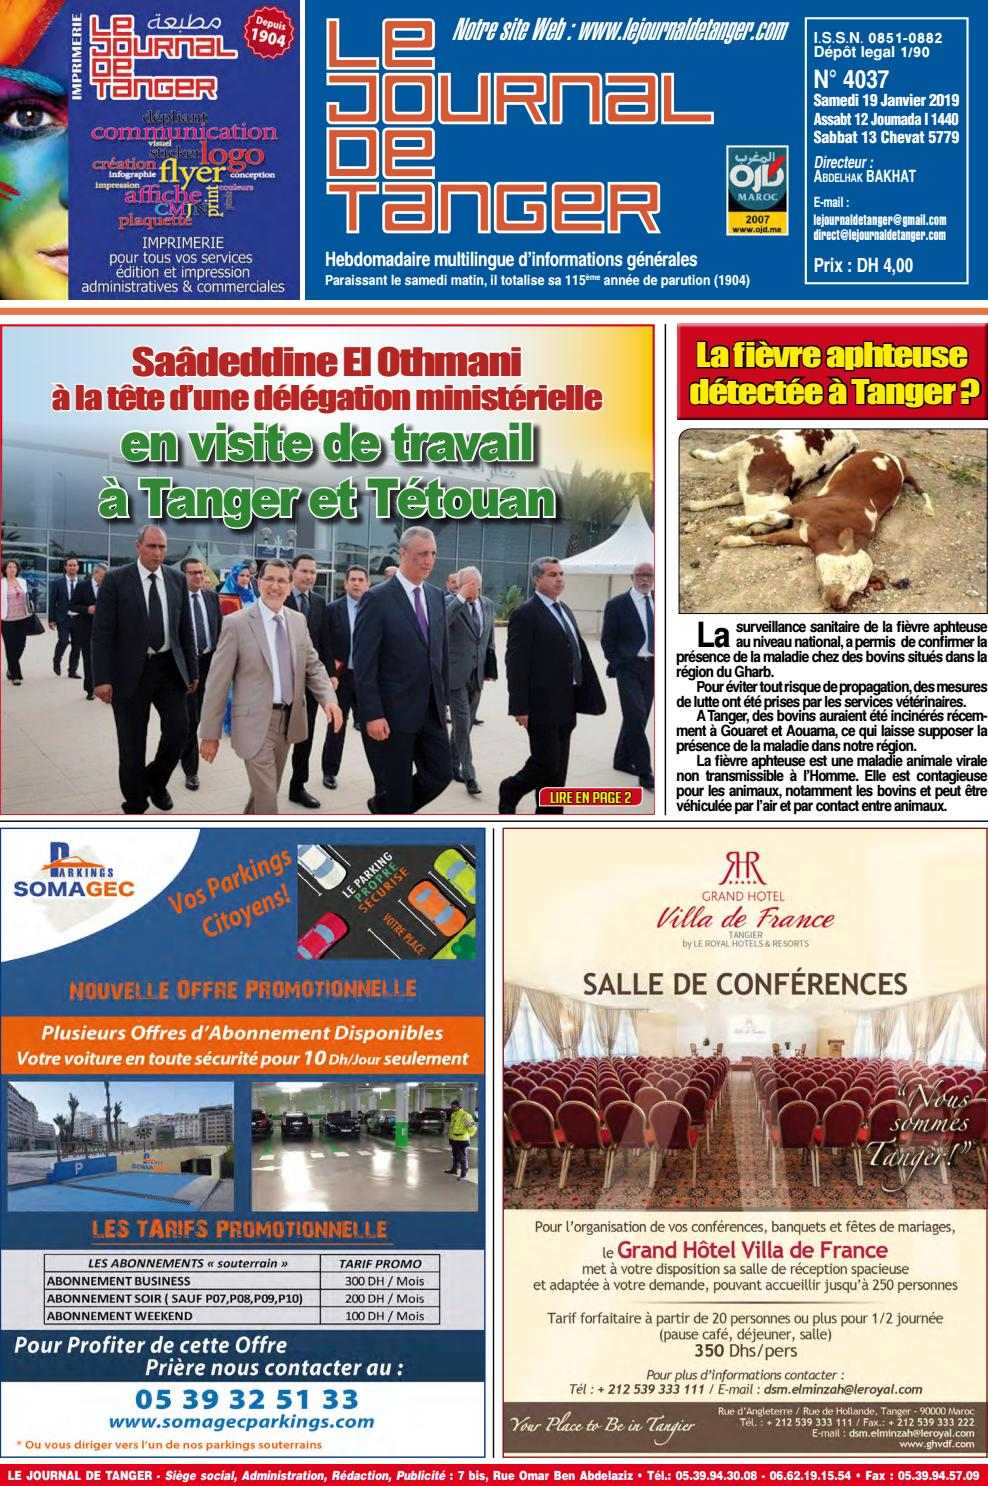 ebb3b6f8f Le journal de Tanger 19 Janvier 2019 by Le Journal de Tanger - issuu